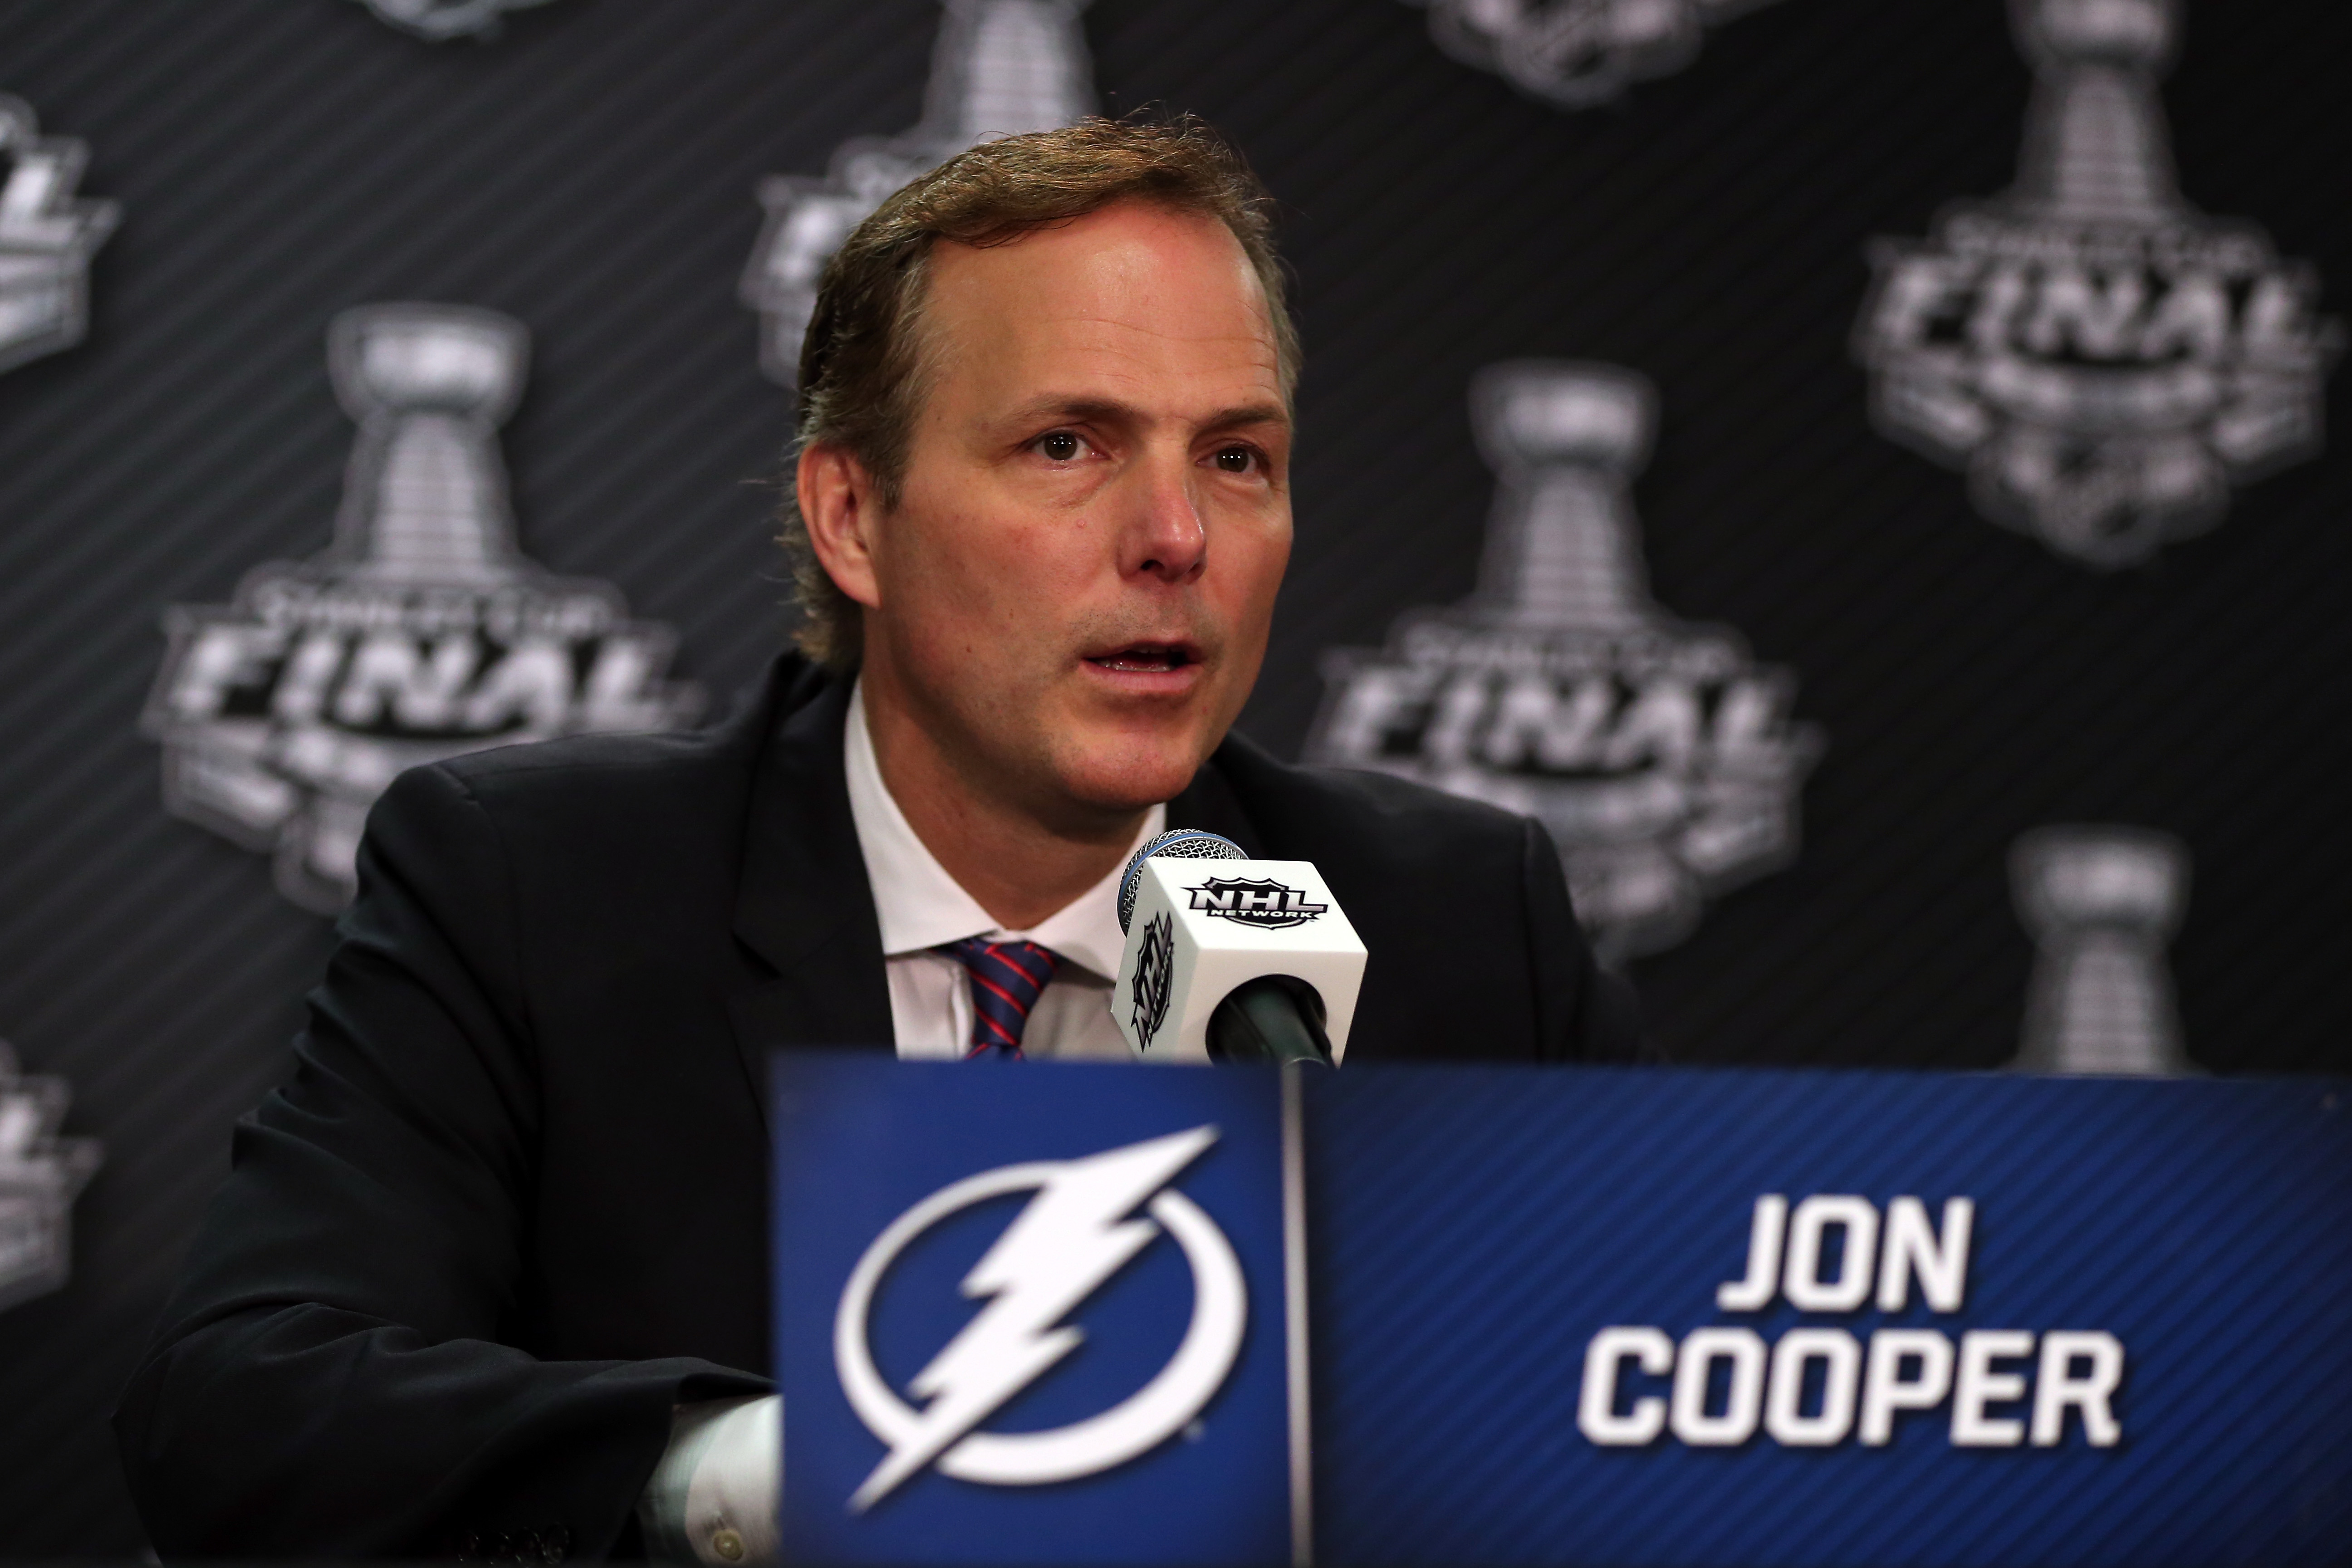 Jon Cooper is on the ballot as best local coach.